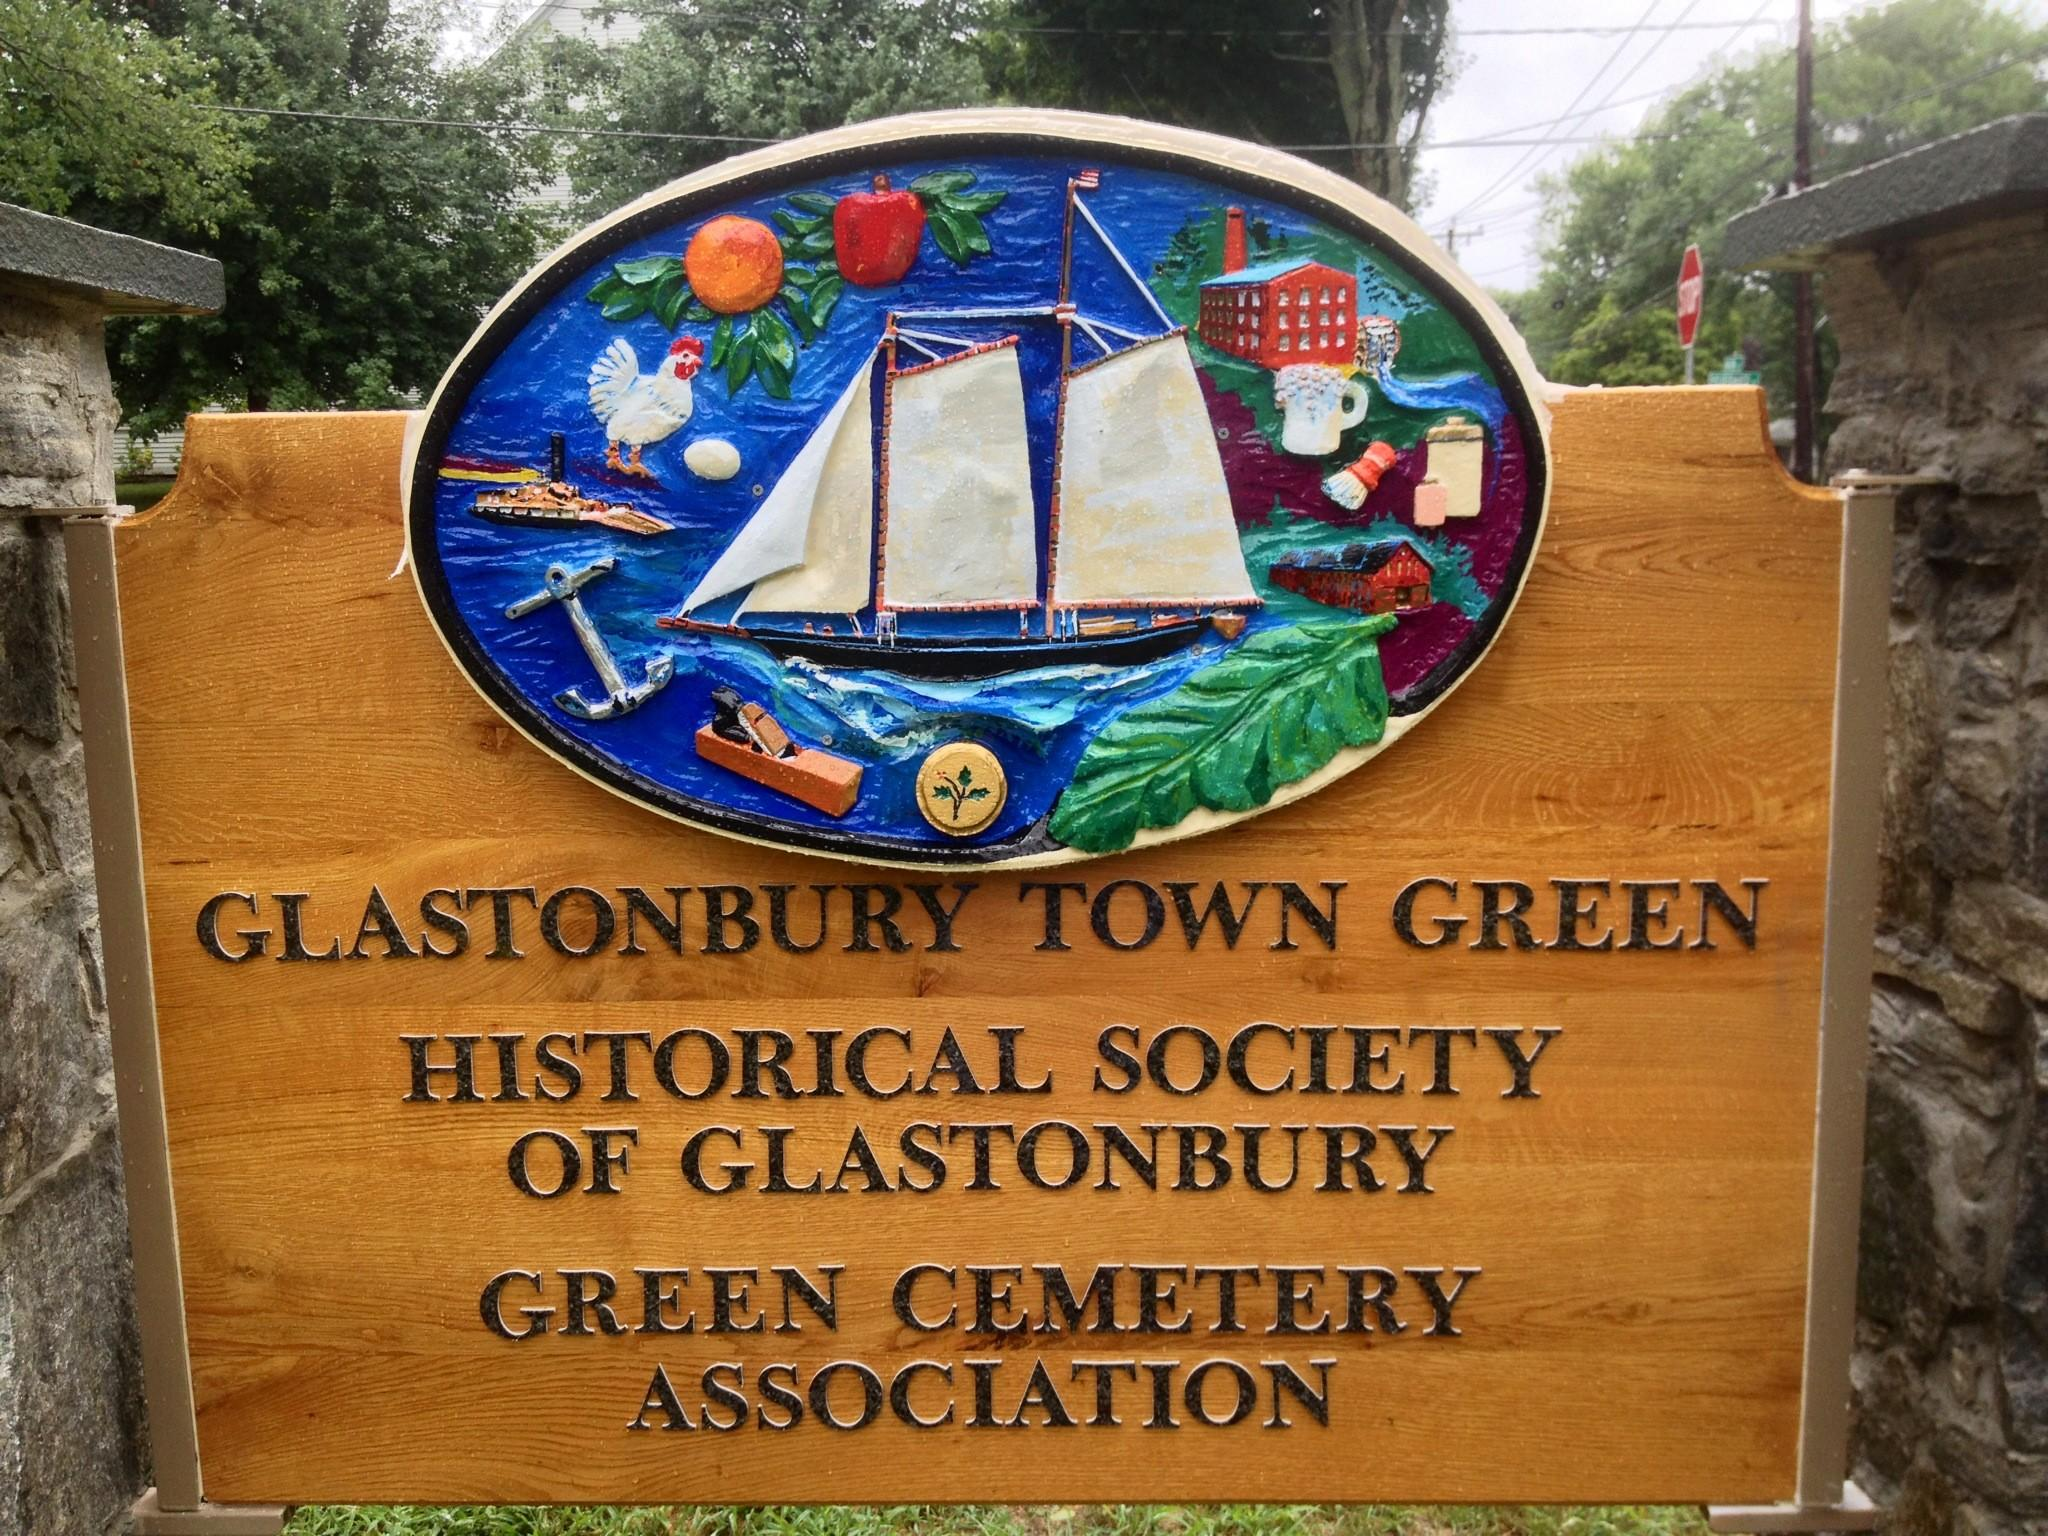 So what's in a sign? Plenty of Glastonbury's history.